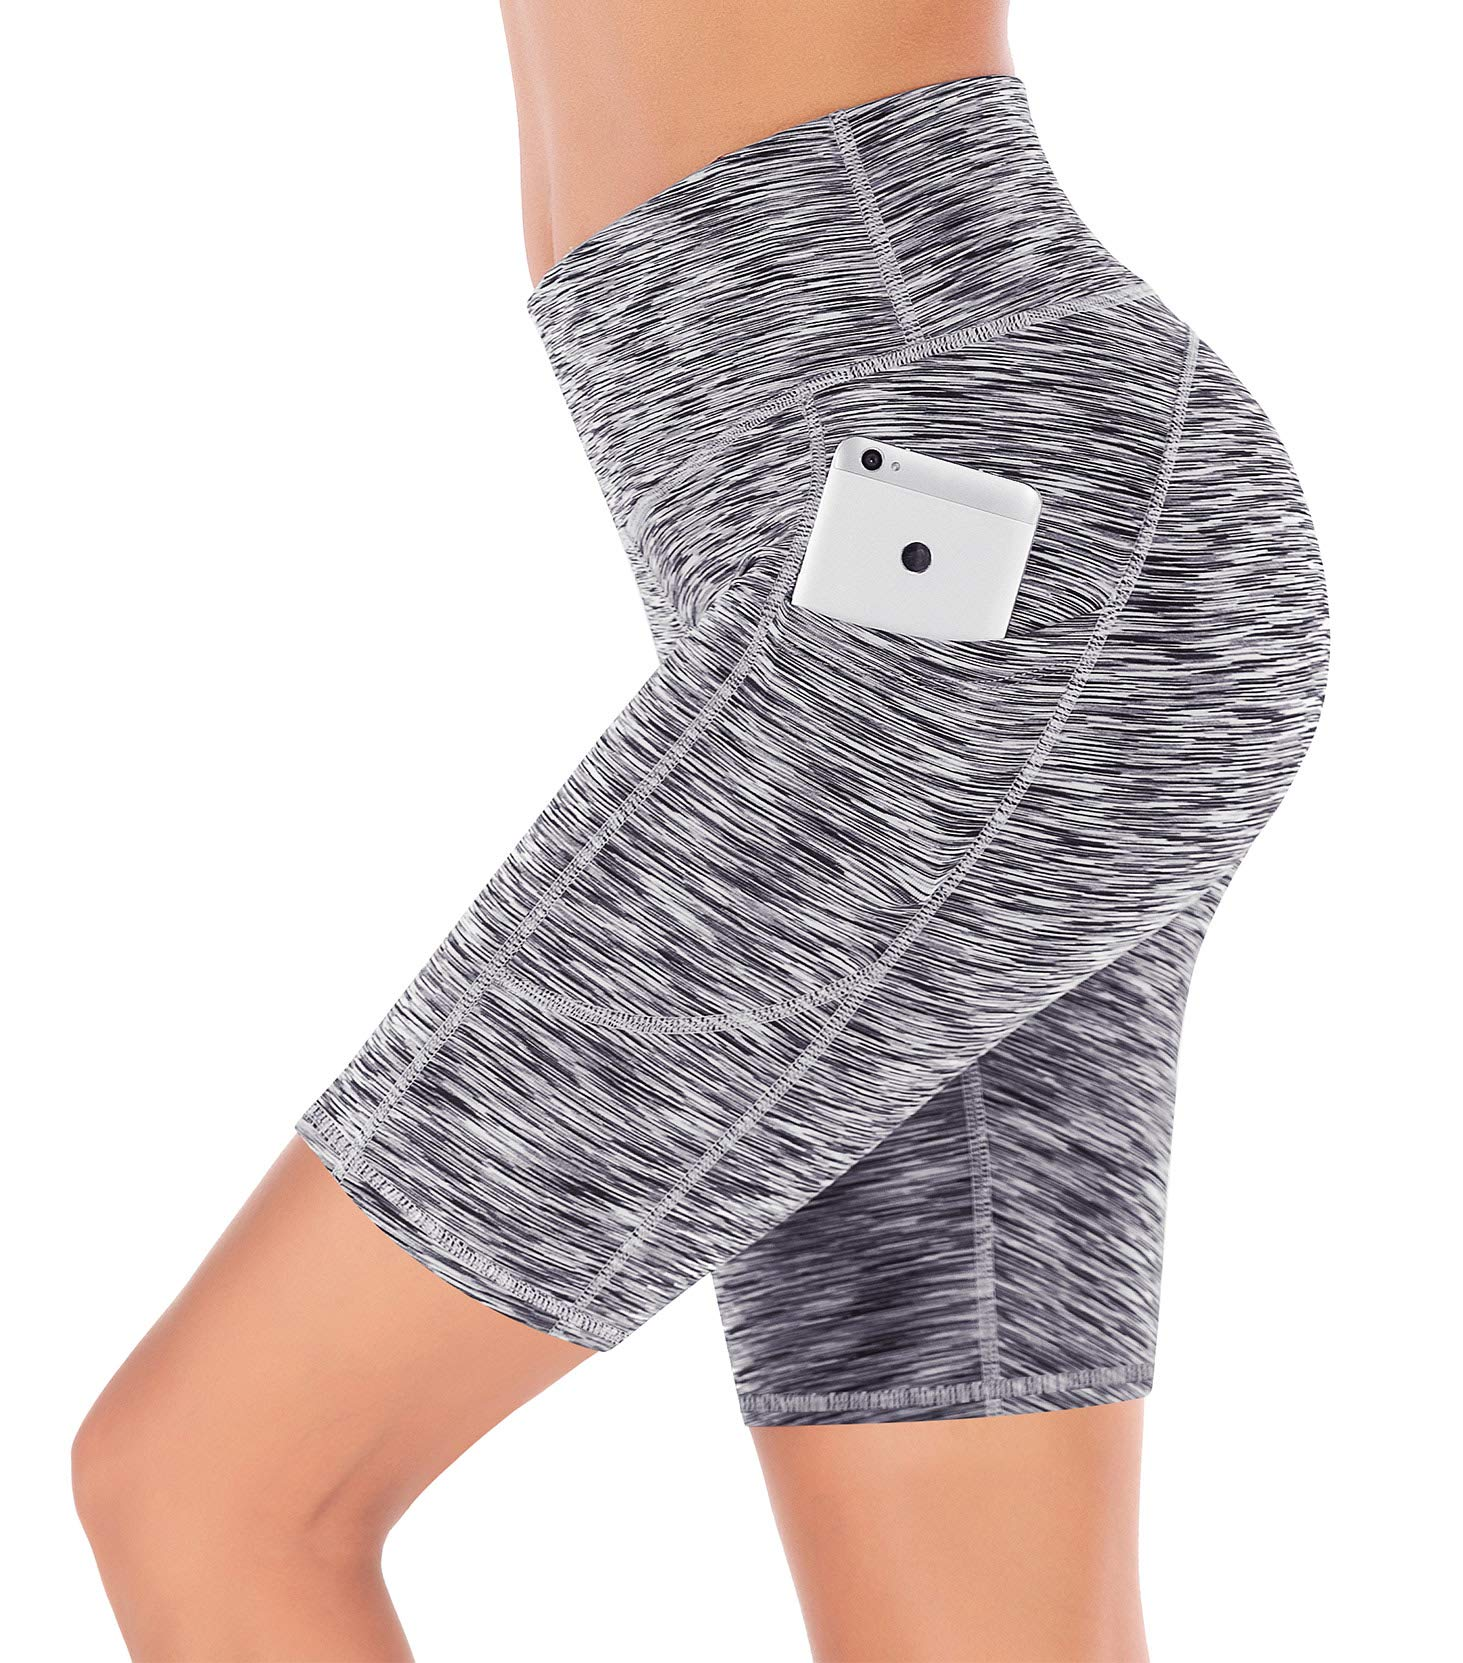 IUGA Yoga Shorts for Women Workout Shorts Tummy Control Running Shorts with Side Pockets by IUGA